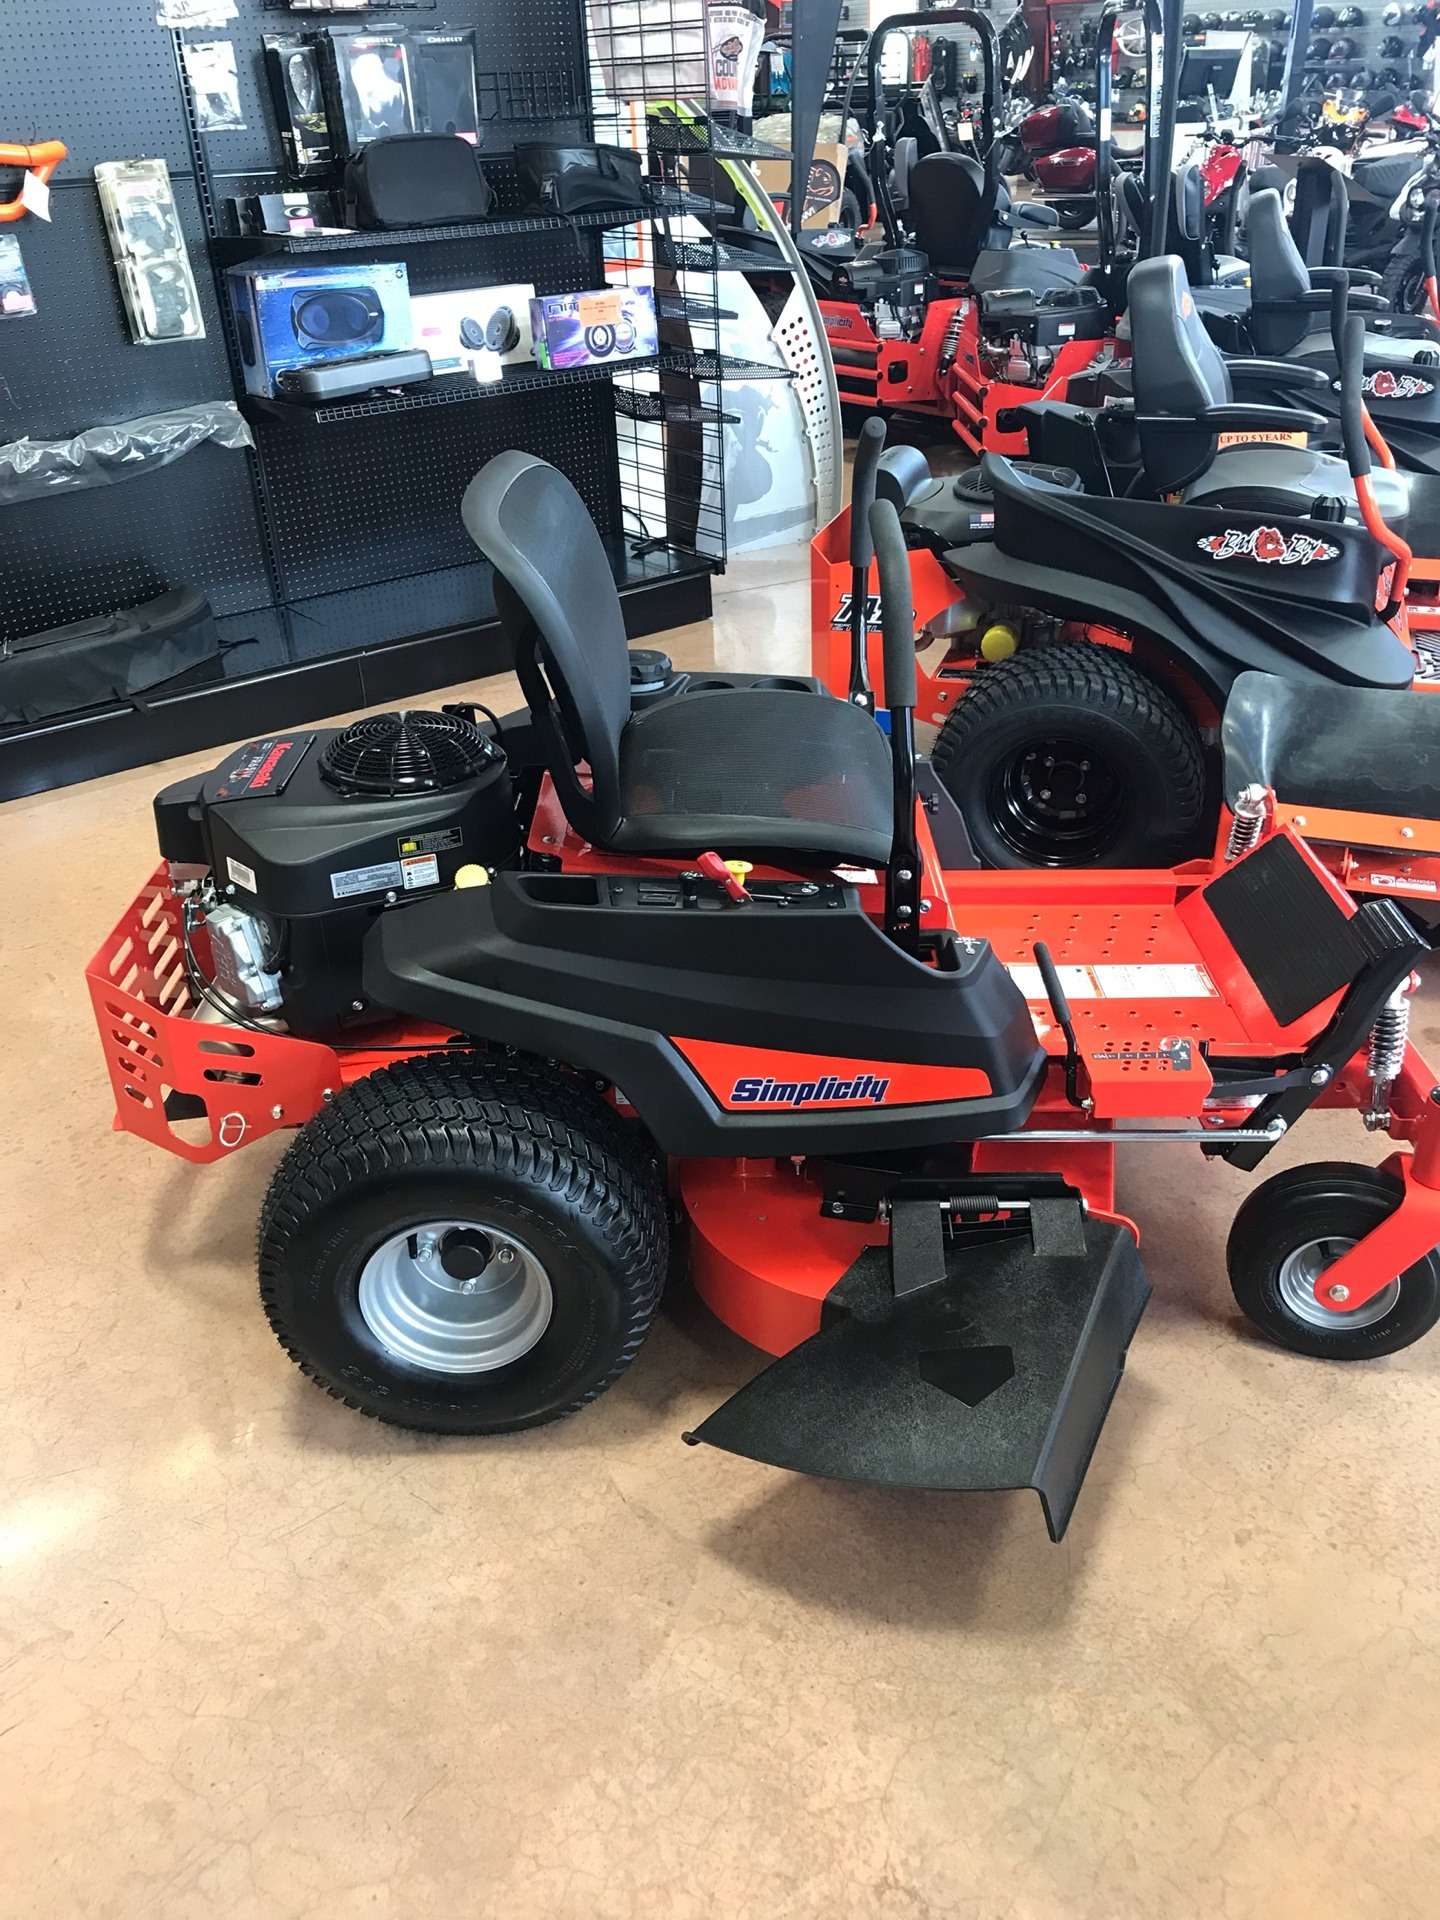 2019 Simplicity Courier 42 in. Kawasaki 21.5 hp in Evansville, Indiana - Photo 3